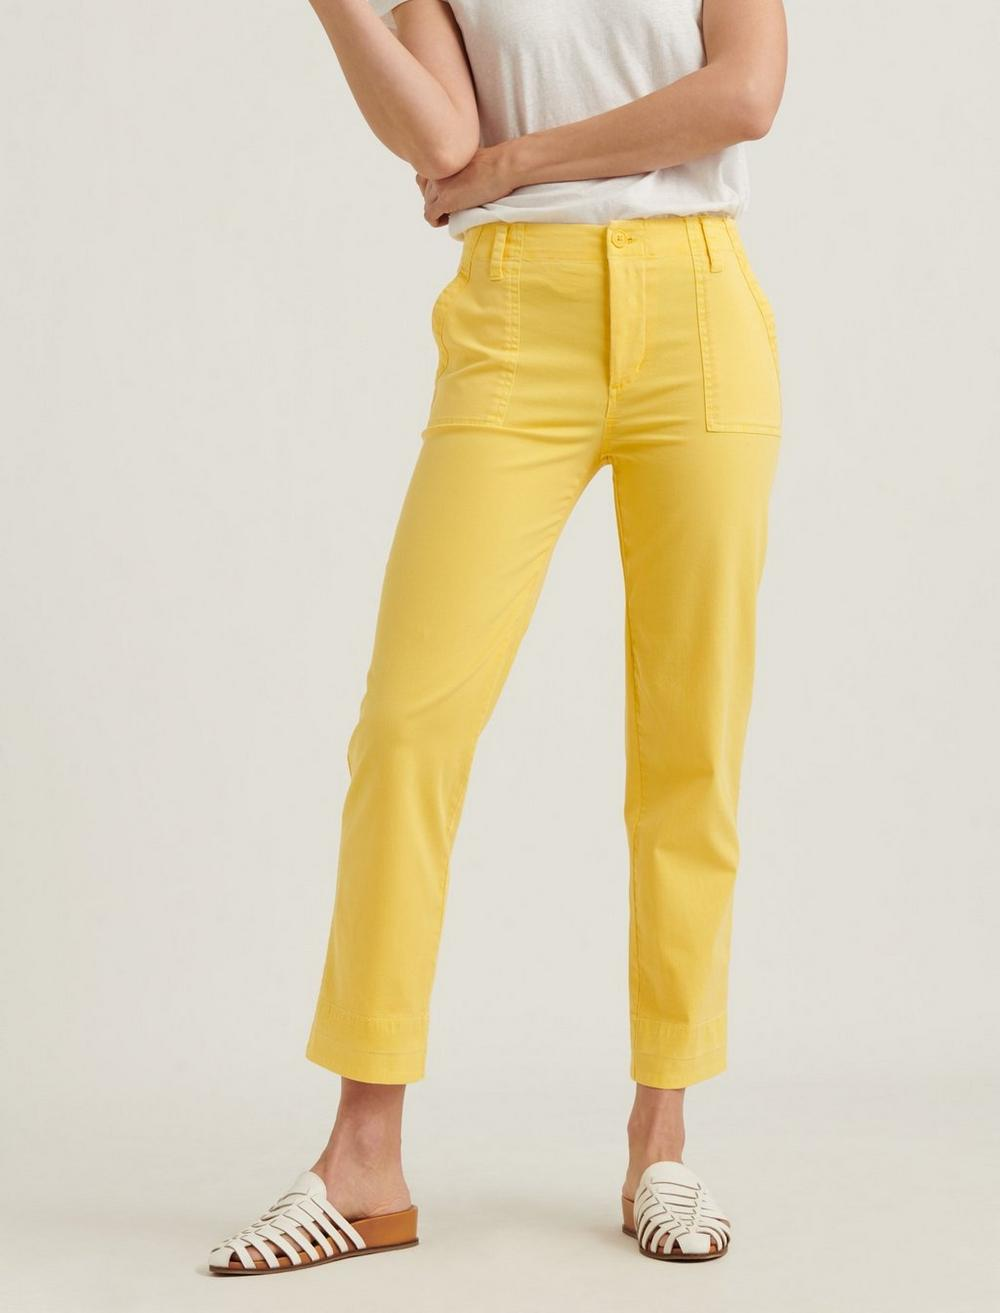 MID RISE UTILITY STRAIGHT PANT, image 5